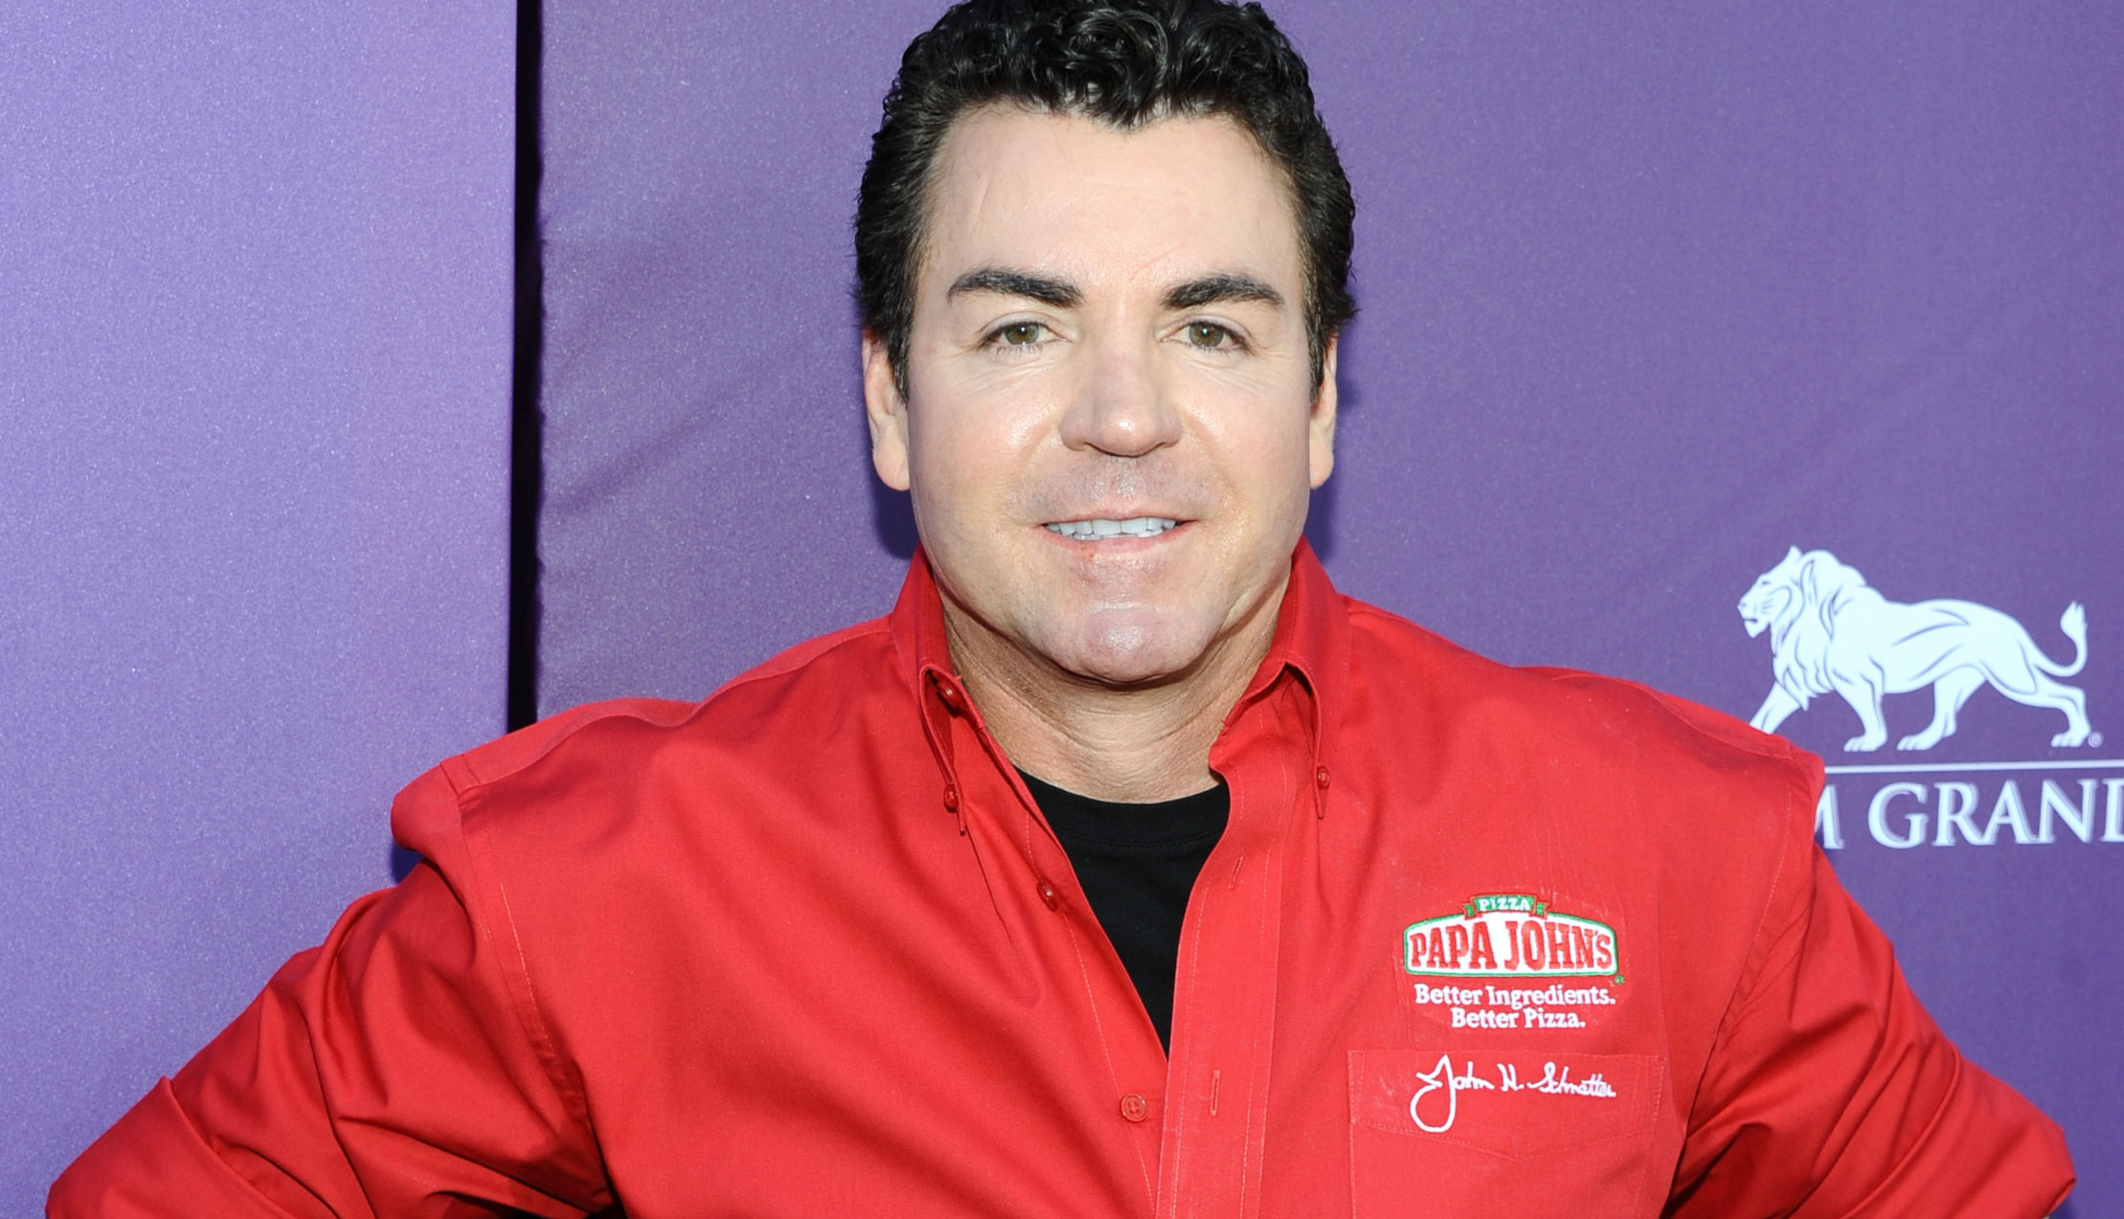 6 Insane Revelations About John Schnatter Papa Johns Work Culture From Forbes Very Real